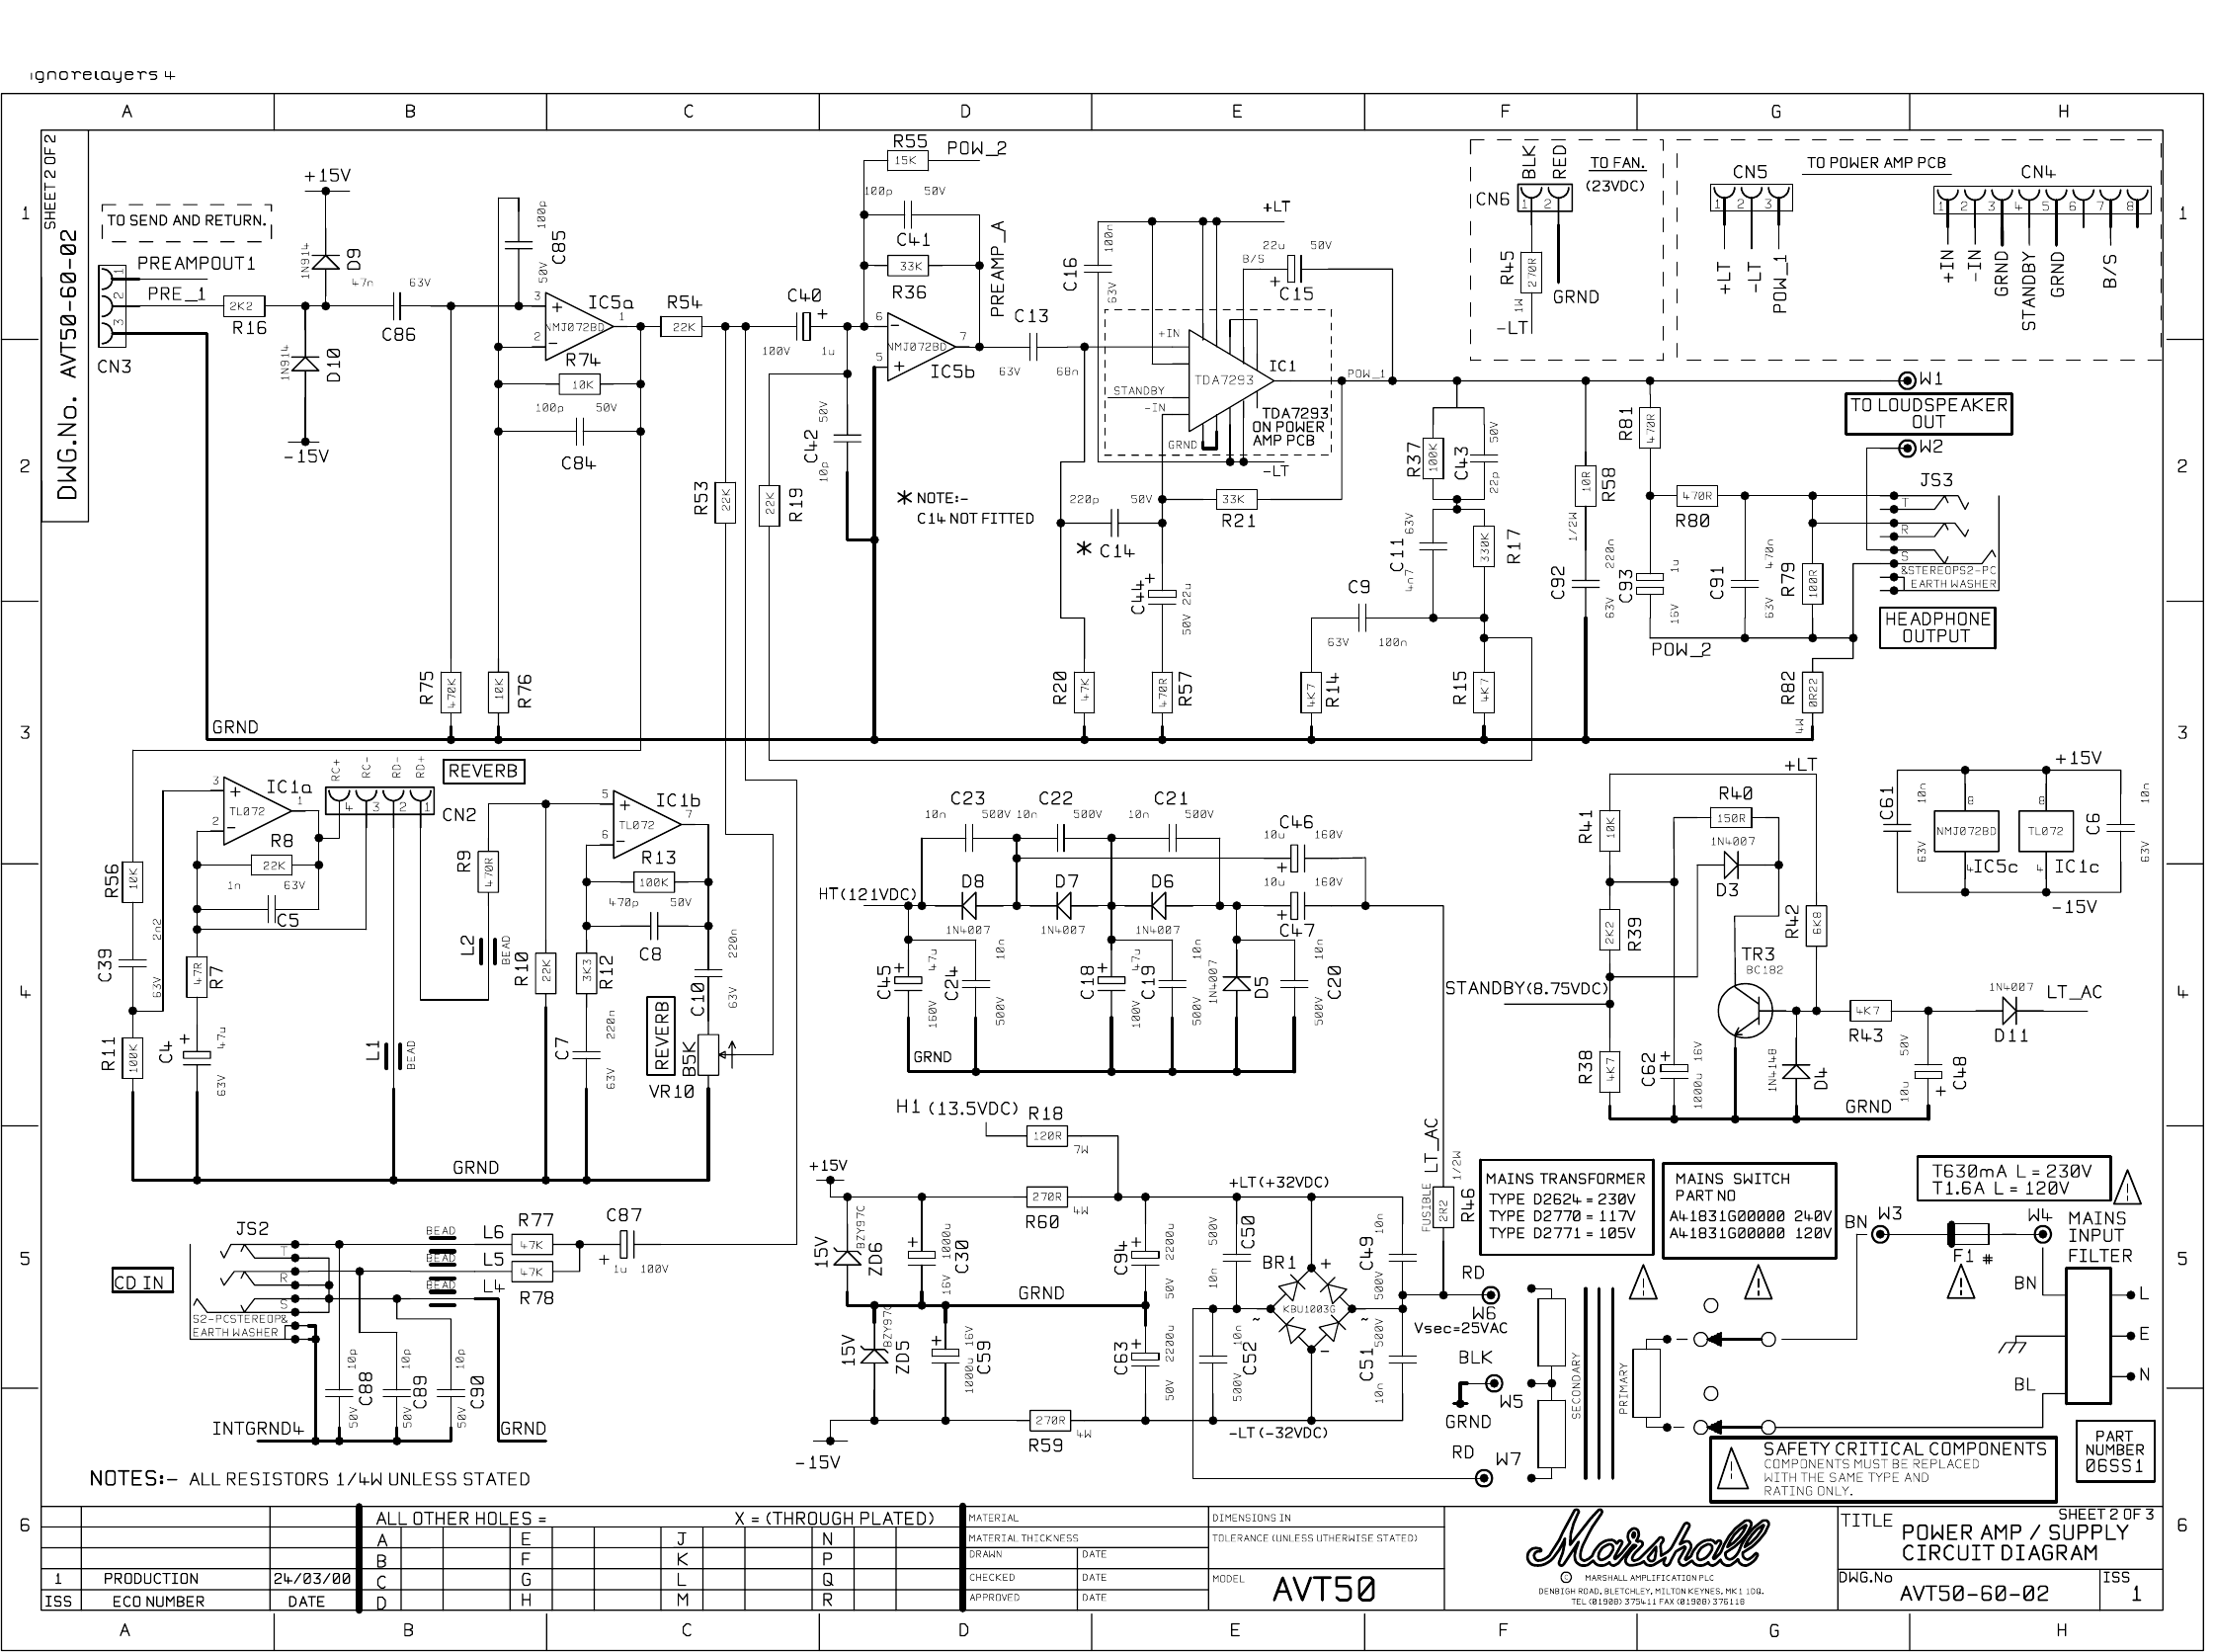 Marshall Avt50 Schematics - [PDF Doent] on circuit diagram, marshall tsl 100 first design, marshall jcm 900 layout, tube map, functional flow block diagram, technical drawing, marshall parts list, one-line diagram, piping and instrumentation diagram, block diagram, marshall jcm pre amp, marshall plexi tubes,